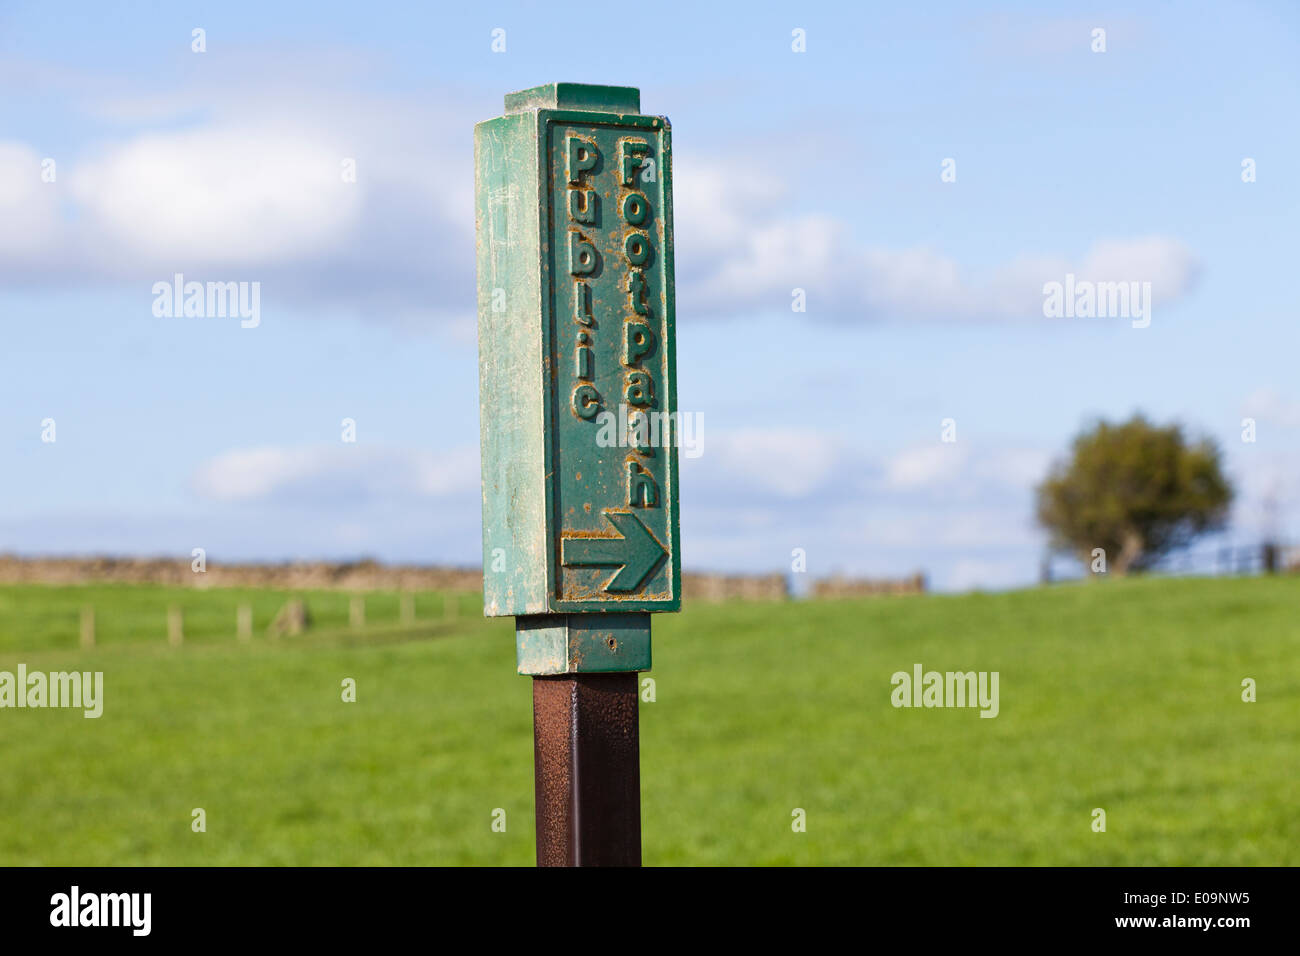 Unusual metal public footpath marker sign at North Rigton, North Yorkshire UK - Stock Image